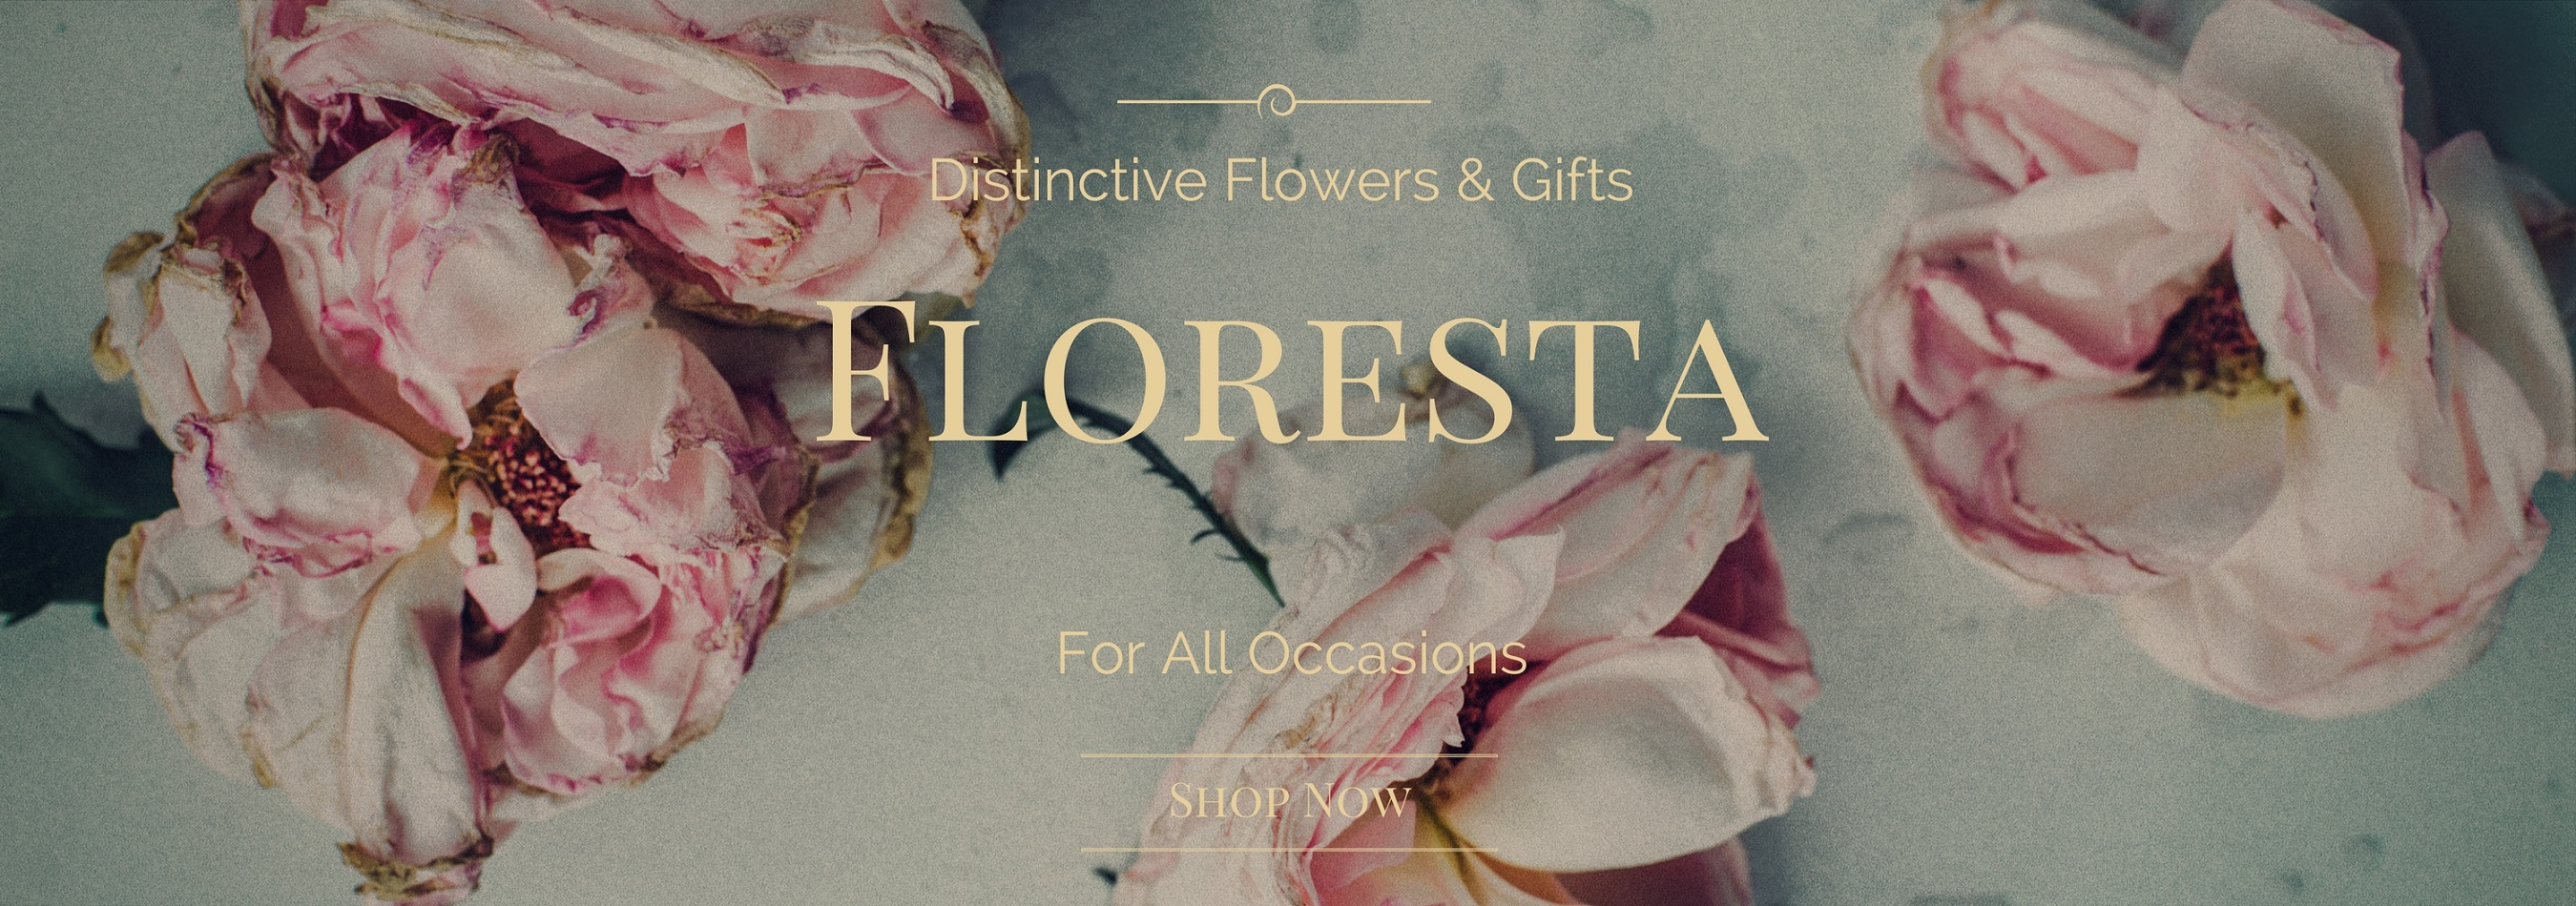 1507964297floresta-floral-and-gift-cover-page.jpg